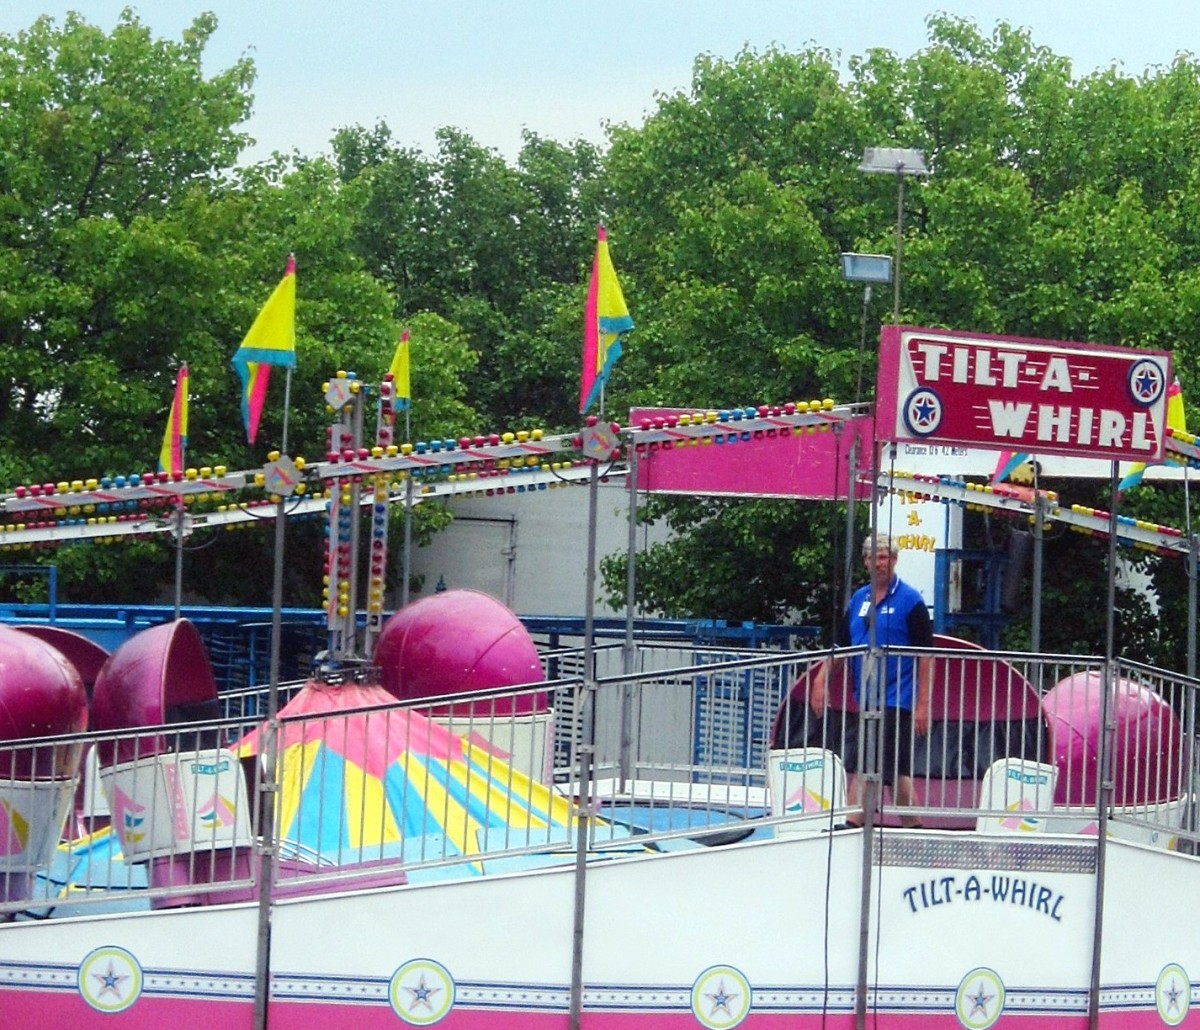 The classic Tilt-a-Whirl